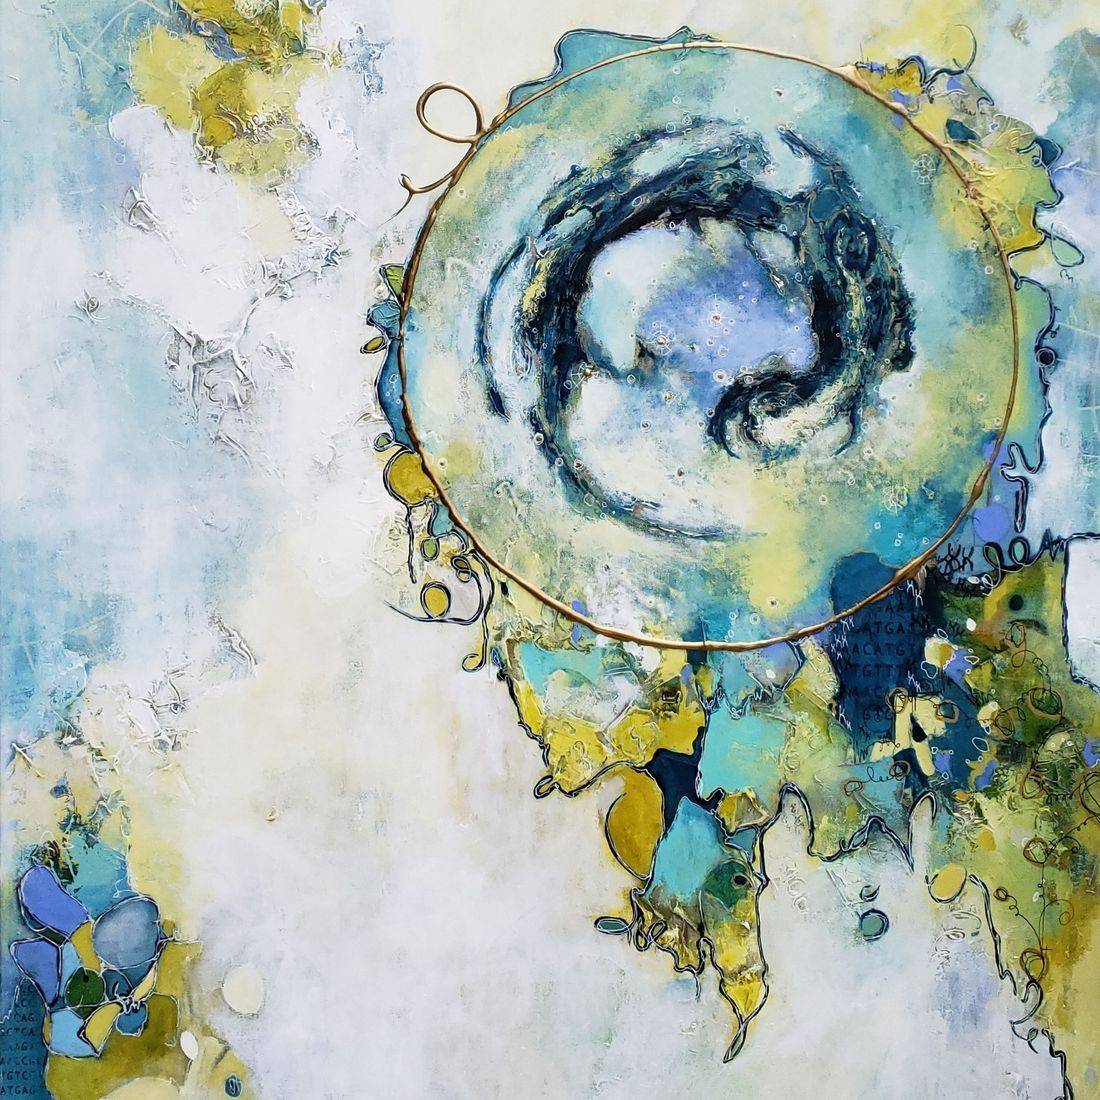 acrylic painting abstract contemporary art space sciart cosmos